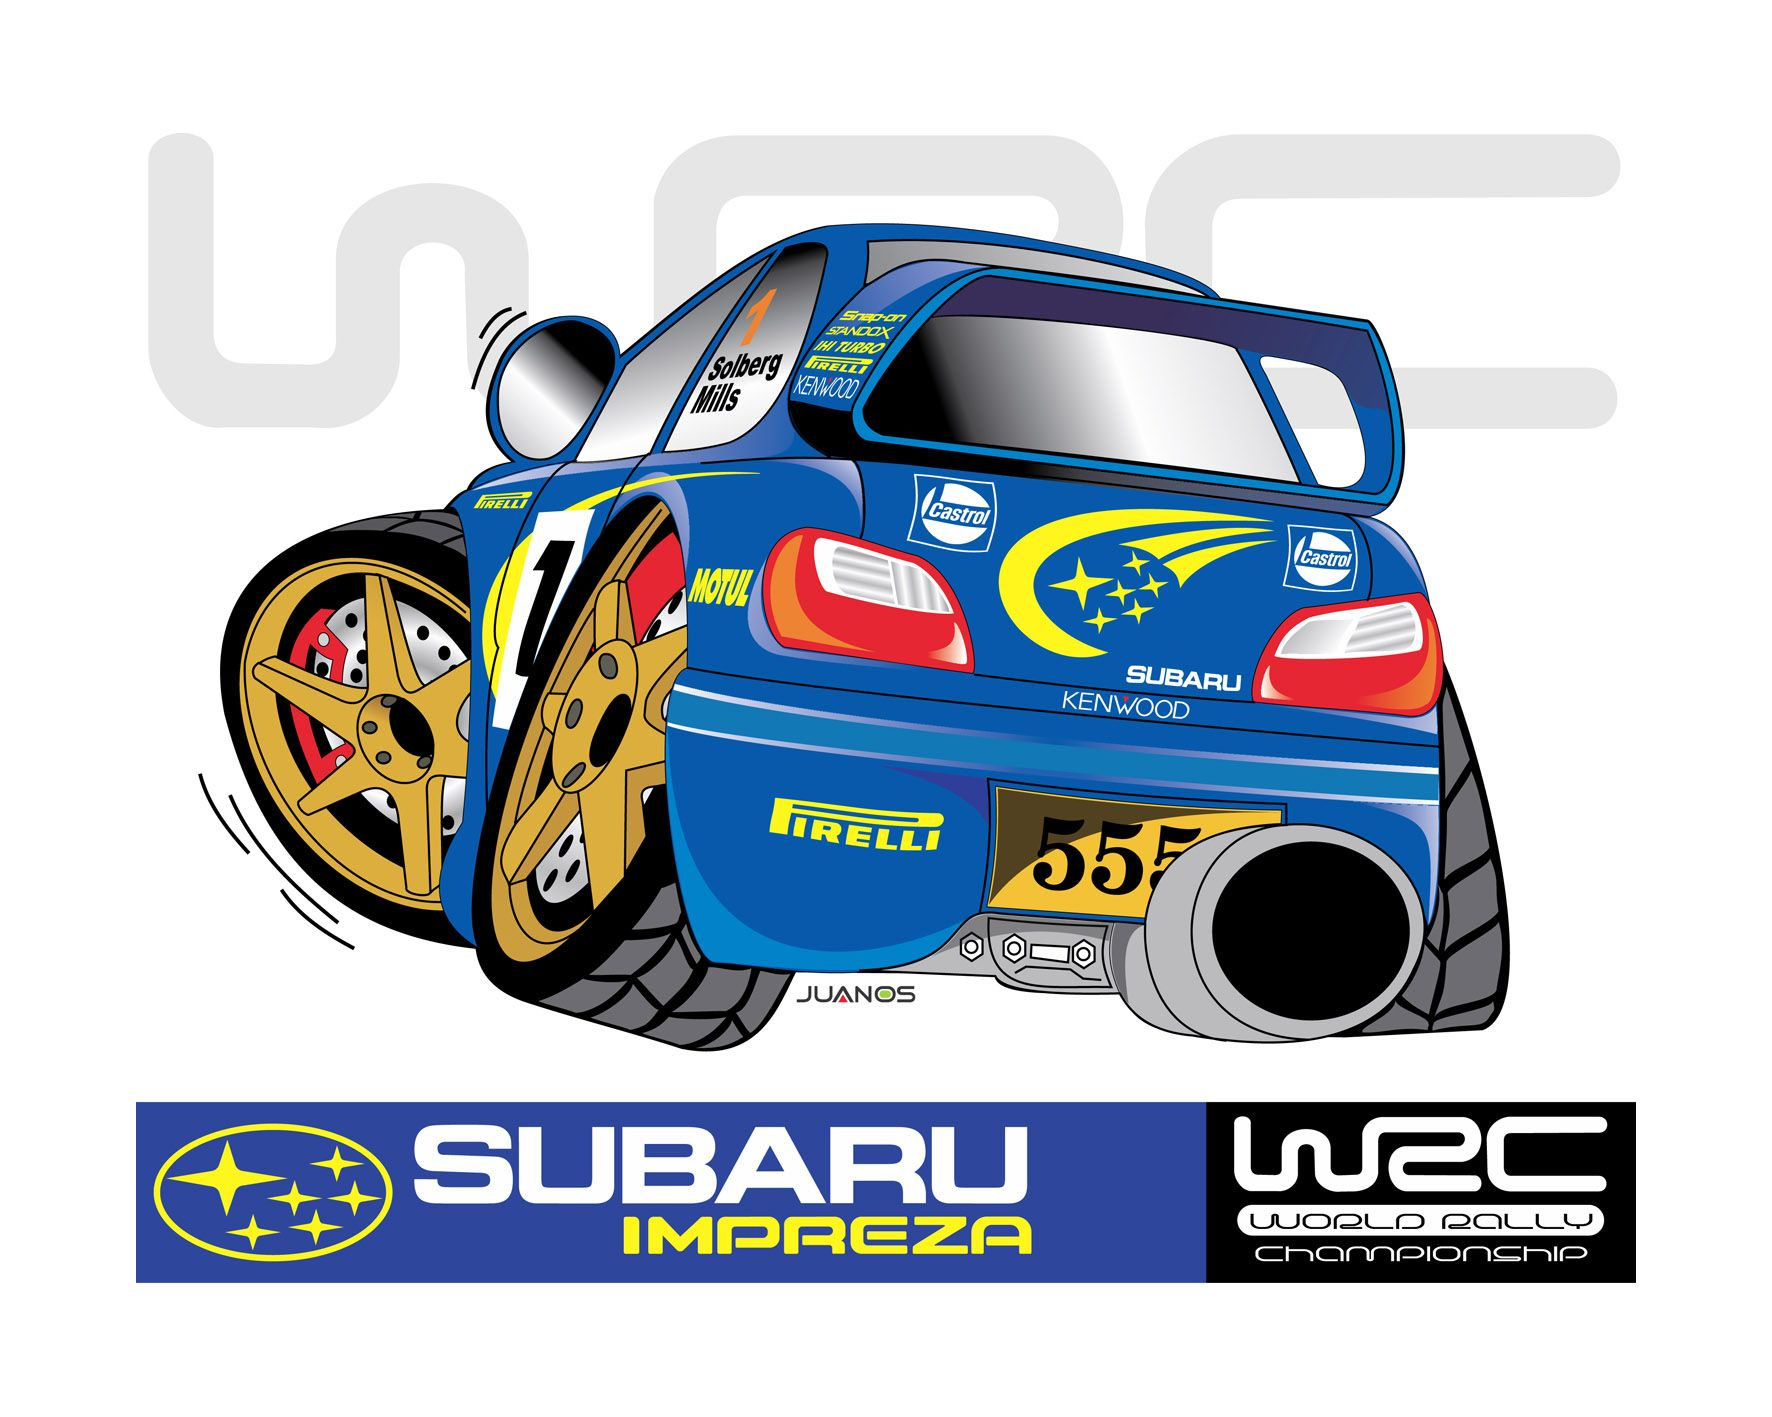 Scooby Doo Subaru WRX Impreza STI WRX WRC Scooby Turbo JDM Funny Car Decal